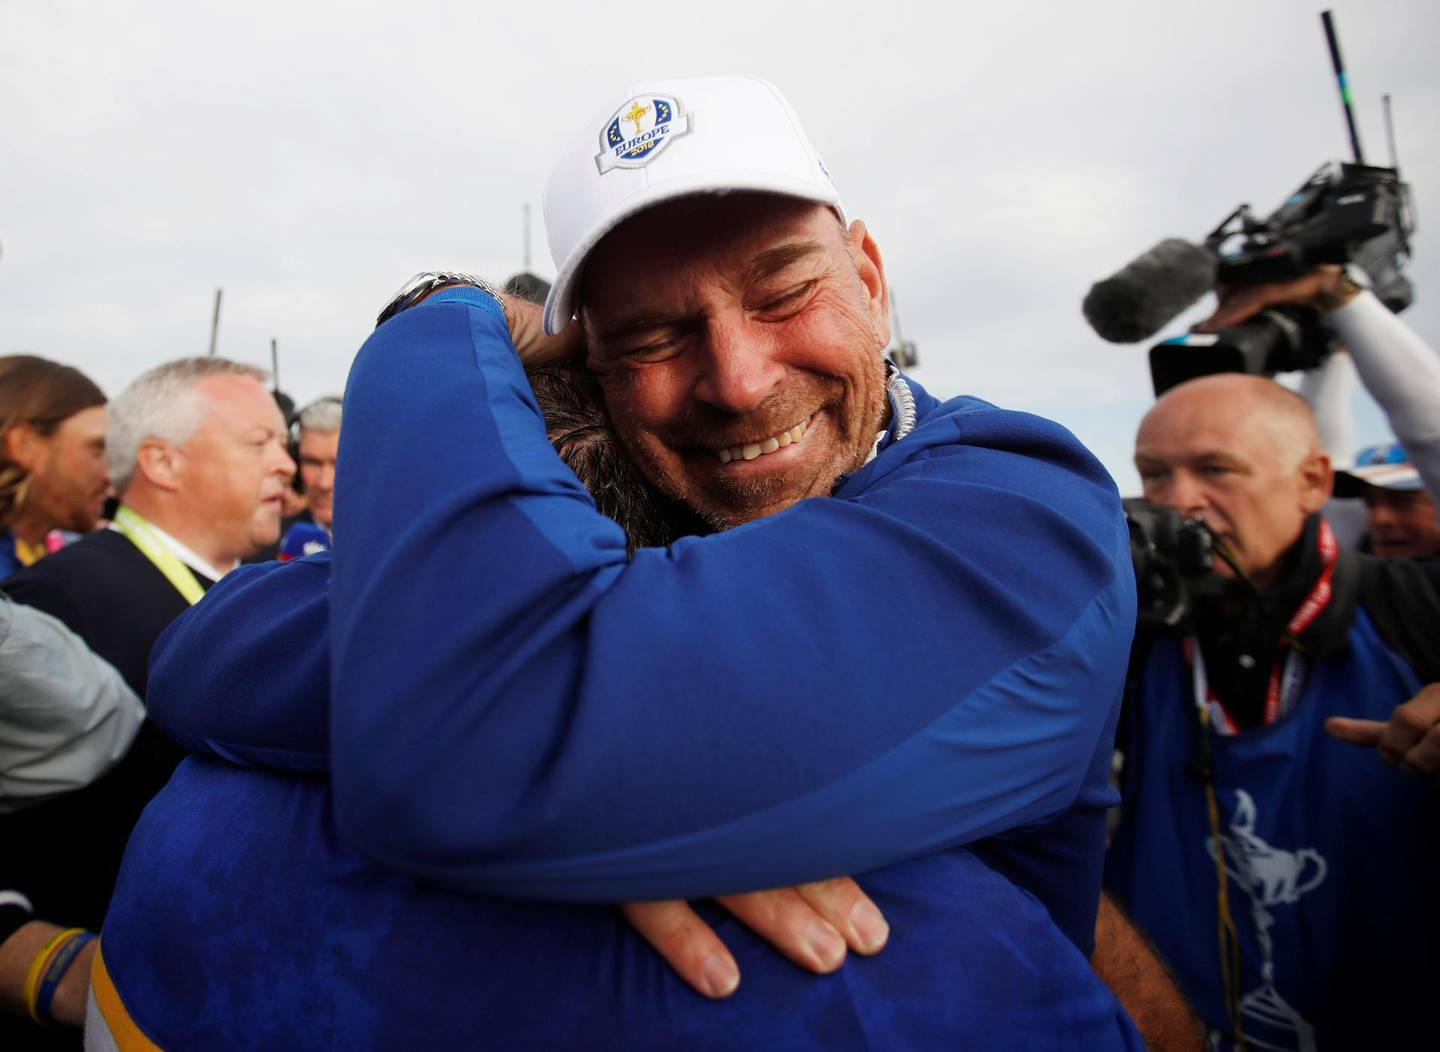 Golf - 2018 Ryder Cup at Le Golf National - Guyancourt, France - September 30, 2018. Team Europe's Francesco Molinari celebrates with captain Thomas Bjorn after winning the Ryder Cup REUTERS/Carl Recine      TPX IMAGES OF THE DAY